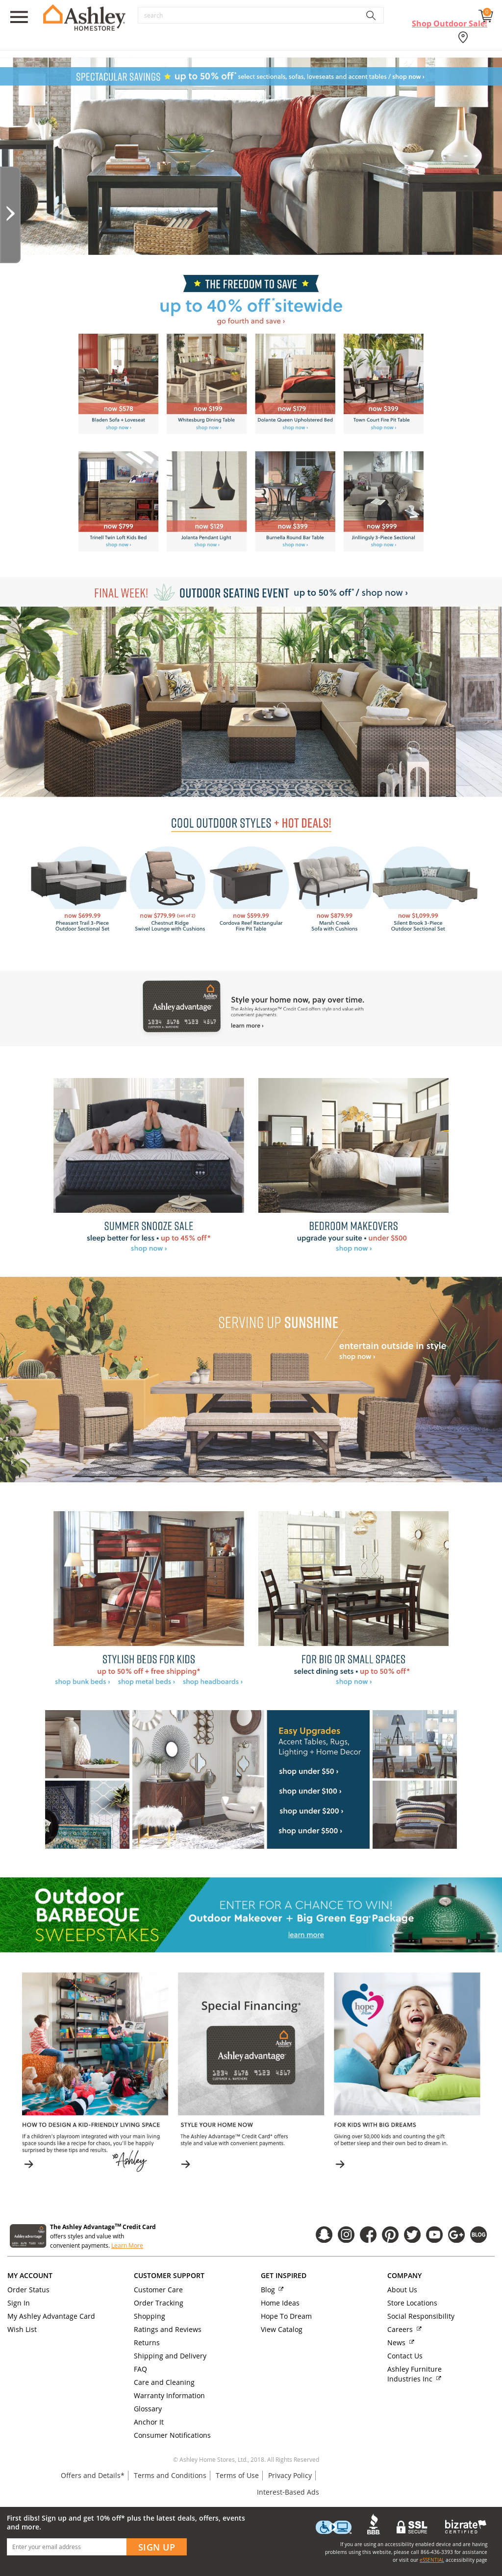 Ashley Furniture Home Website History